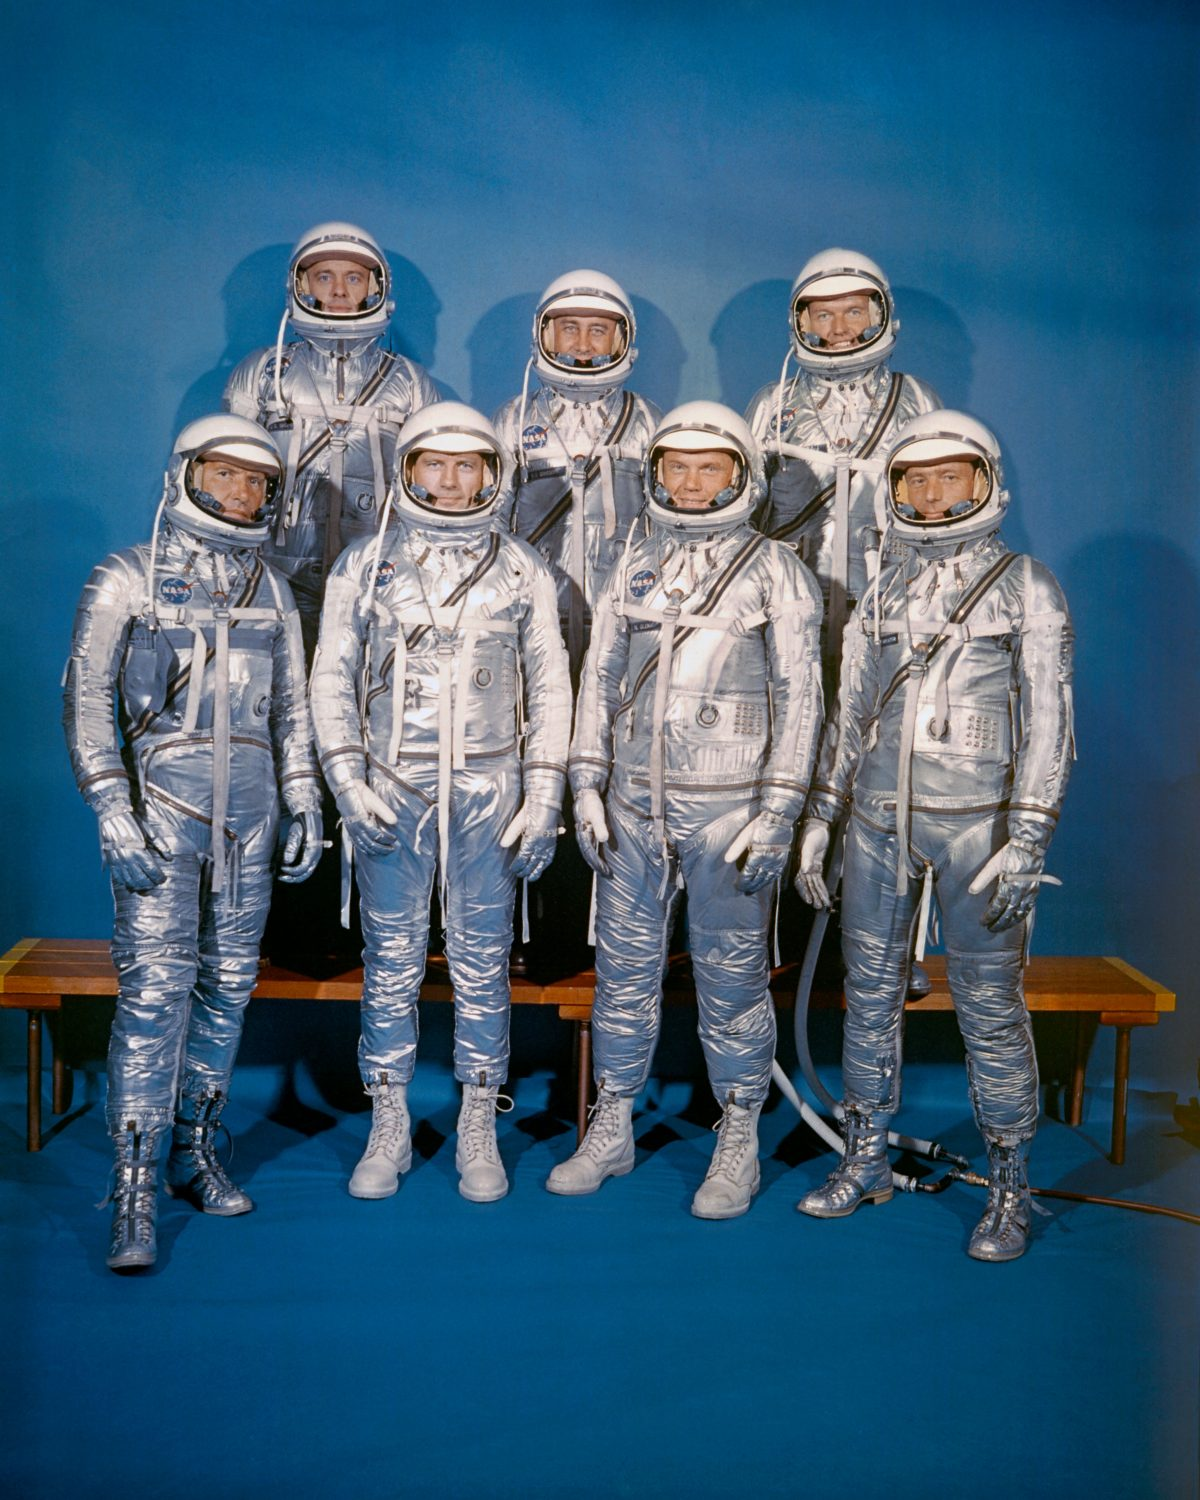 "The_Mercury_7 On April 9, 1959, NASA introduced its first astronaut class, the Mercury 7. Front row, left to right: Walter M. Schirra, Jr., Donald K. ""Deke"" Slayton, John H. Glenn, Jr., and M. Scott Carpenter; back row, Alan B. Shepard, Jr., Virgil I. ""Gus"" Grissom, and L. Gordon Cooper, Jr."